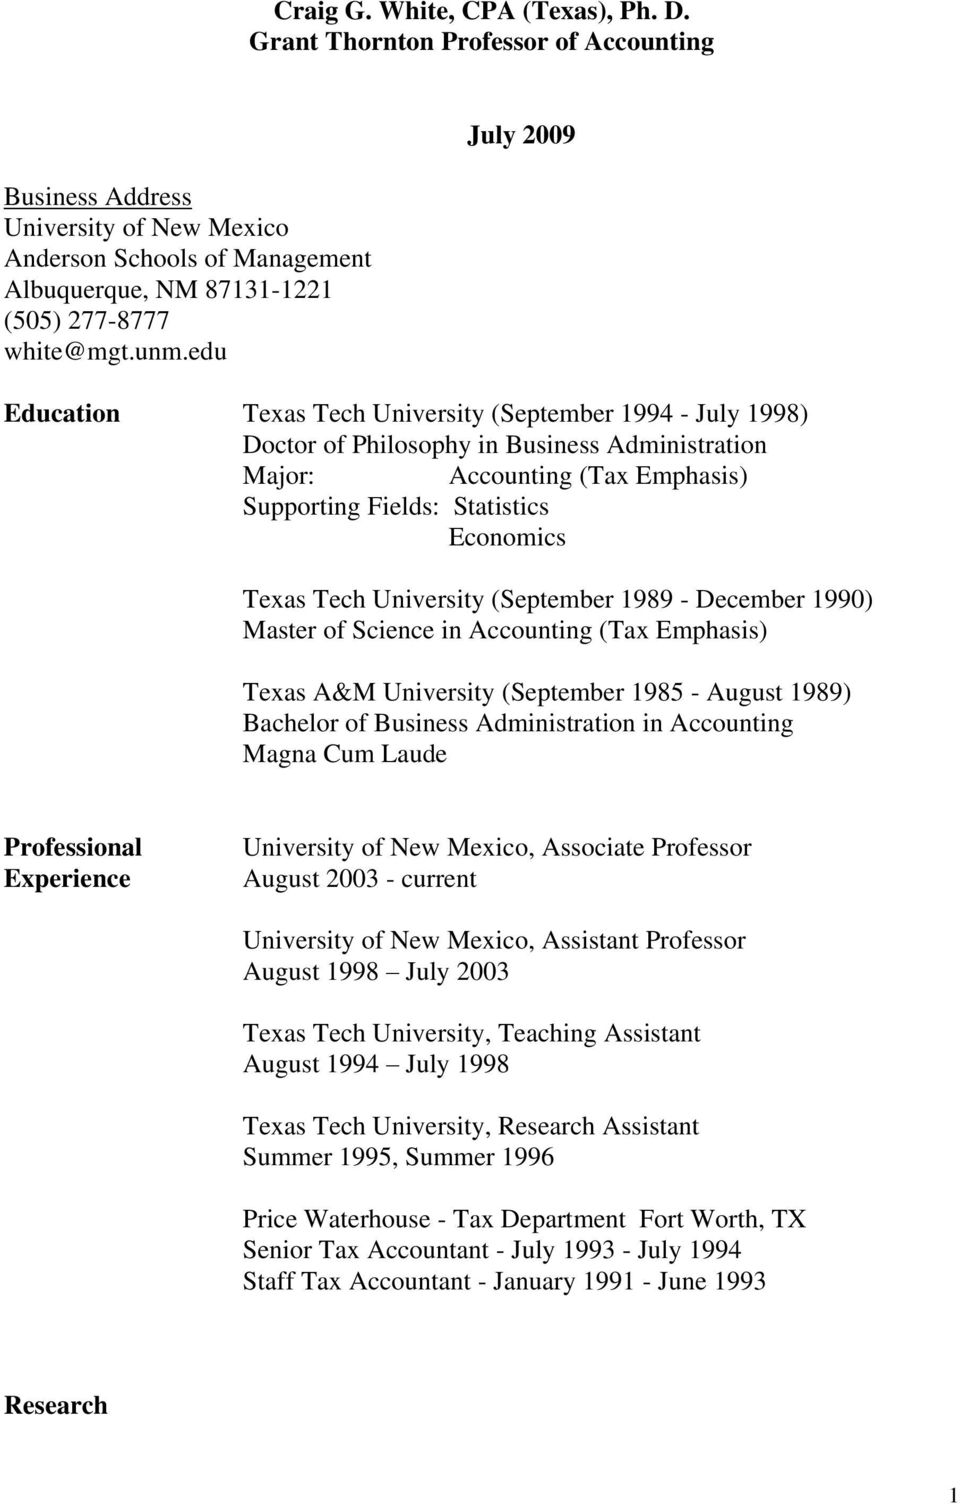 Texas Tech University (September 1989 - December 1990) Master of Science in Accounting (Tax Emphasis) Texas A&M University (September 1985 - August 1989) Bachelor of Business Administration in